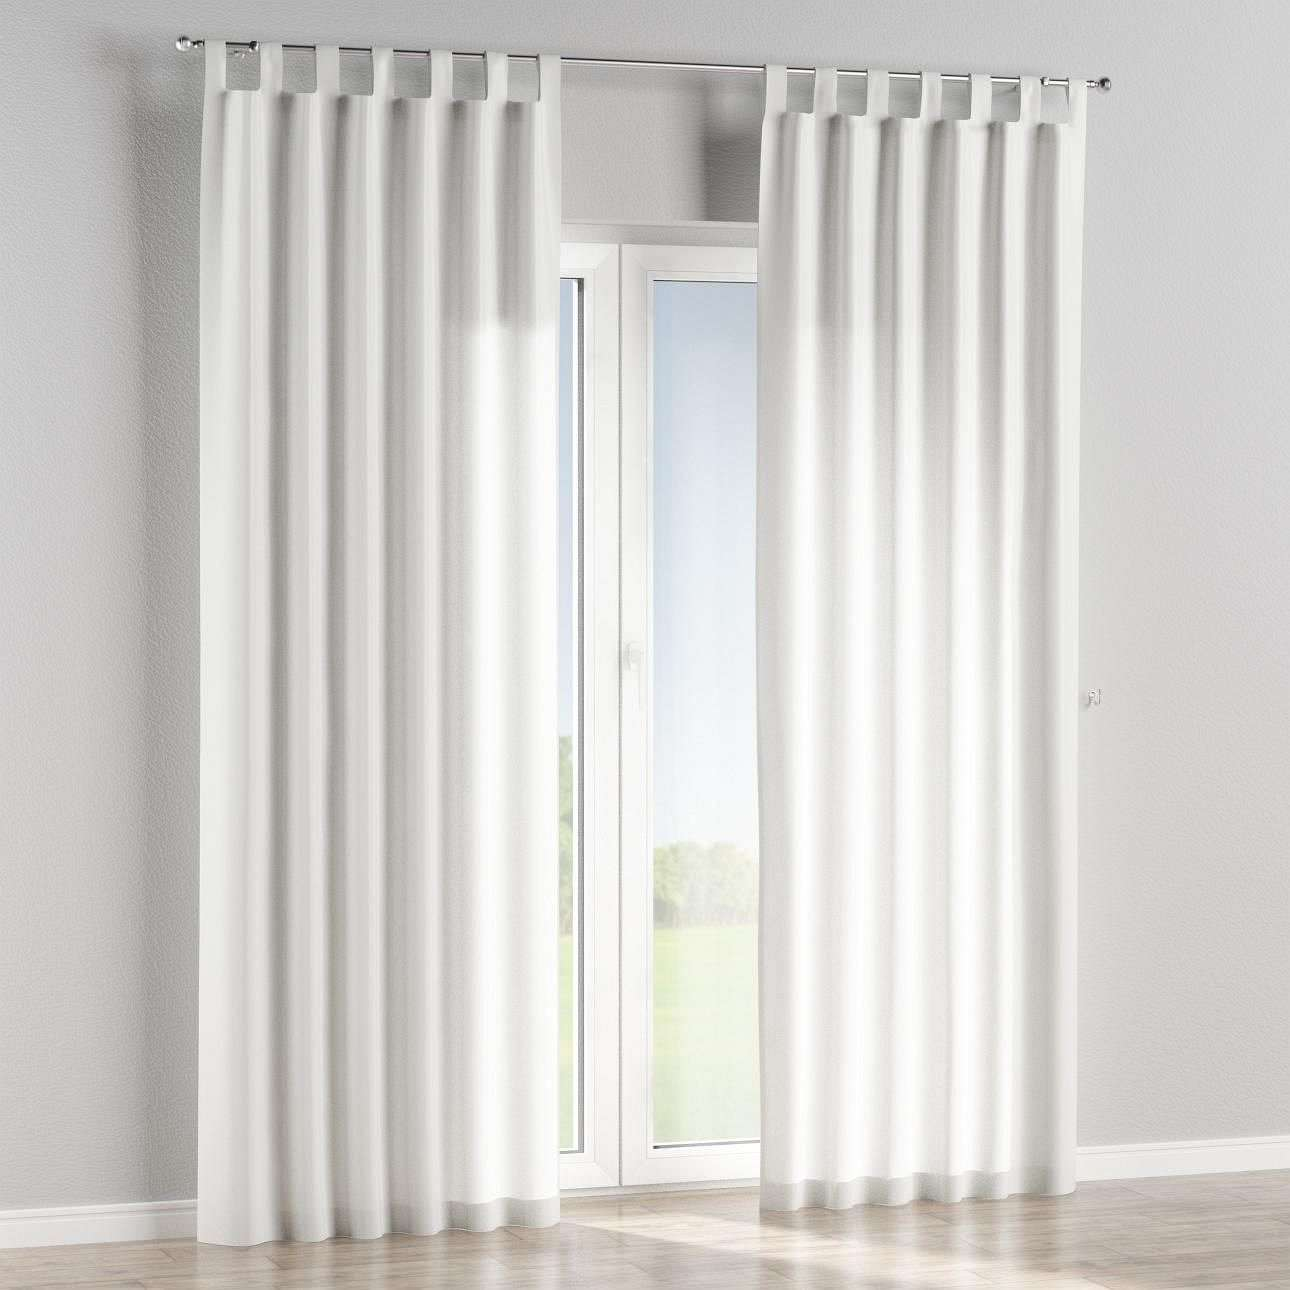 Tab top lined curtains in collection Rustica, fabric: 138-15